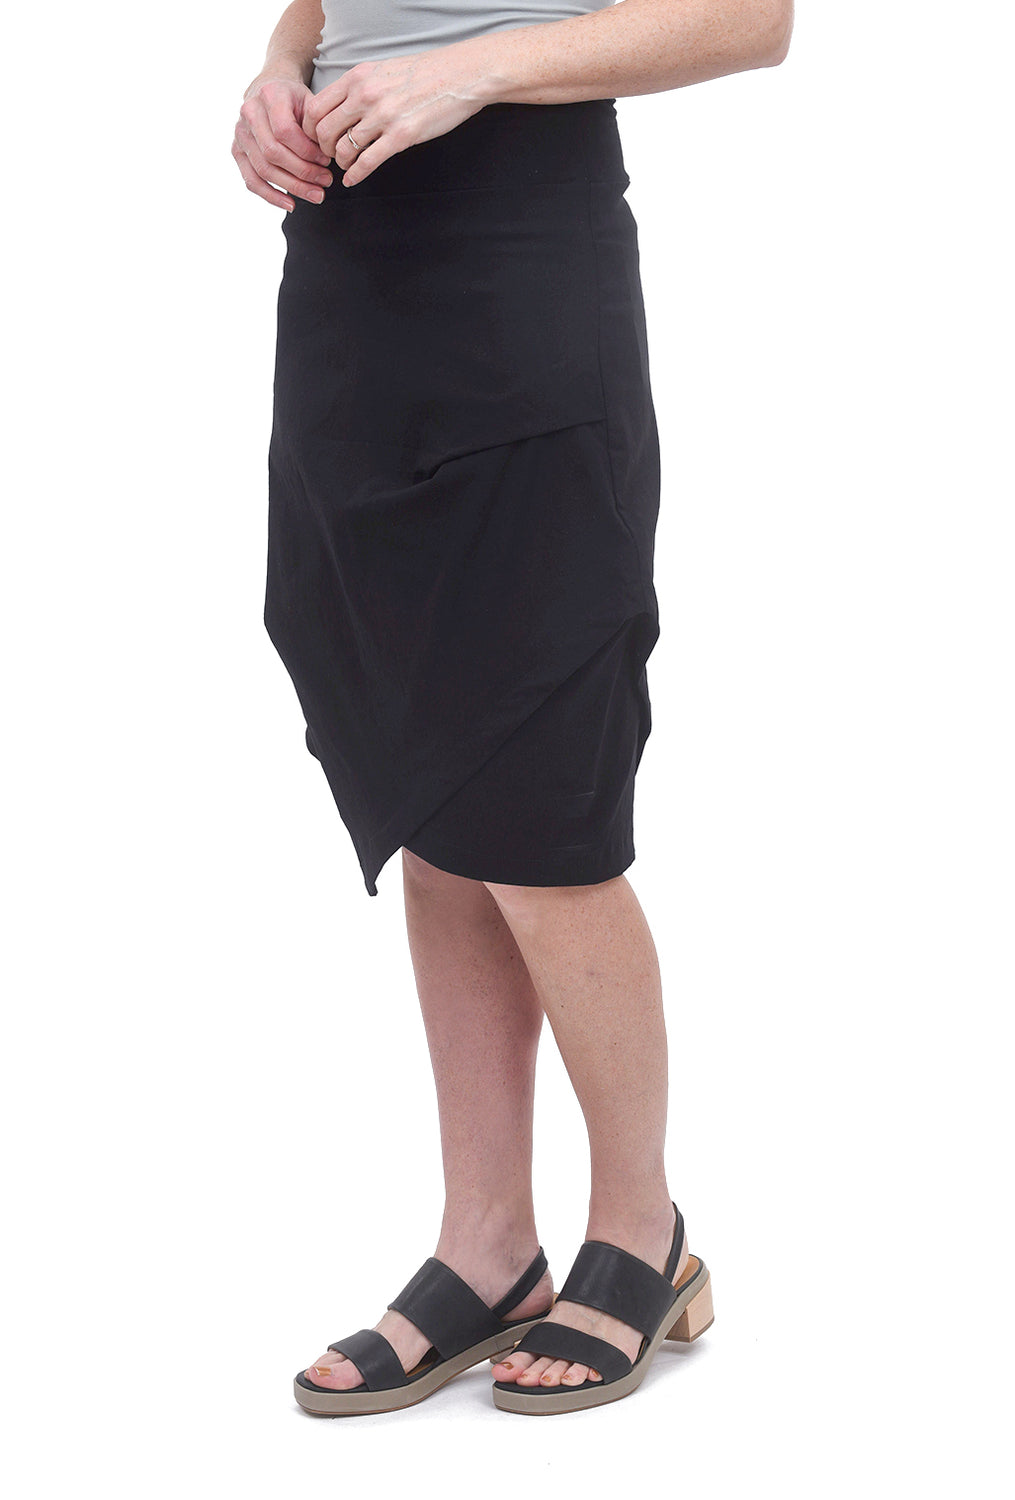 Porto Pout Skirt, Black